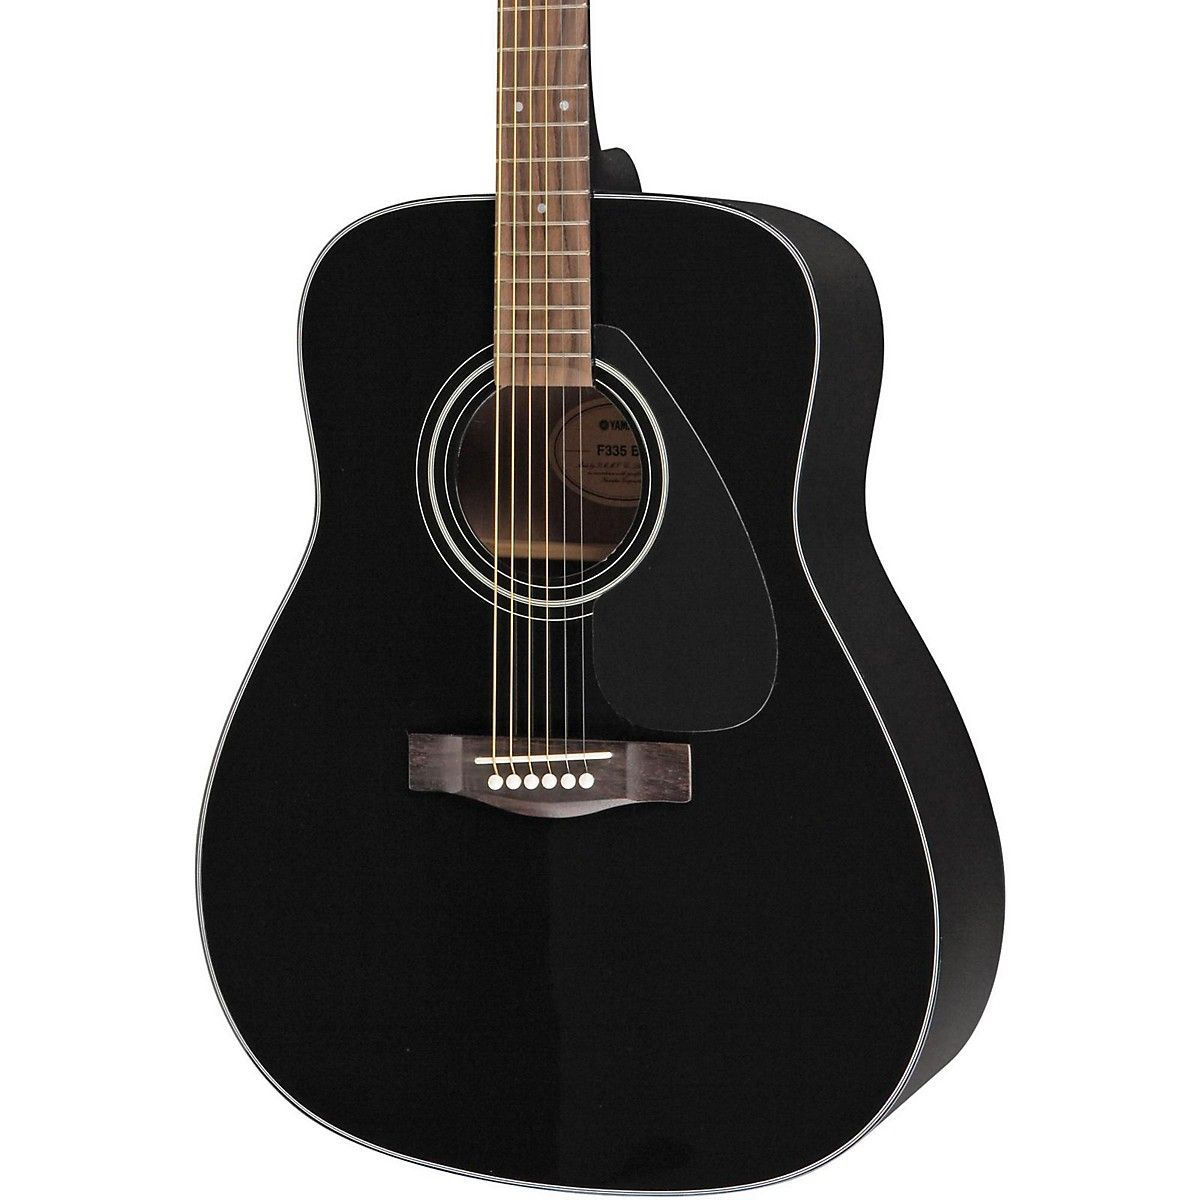 Yamaha F335 Acoustic Guitar In 2020 Acoustic Guitar Acoustic Guitar Lessons Yamaha Guitar